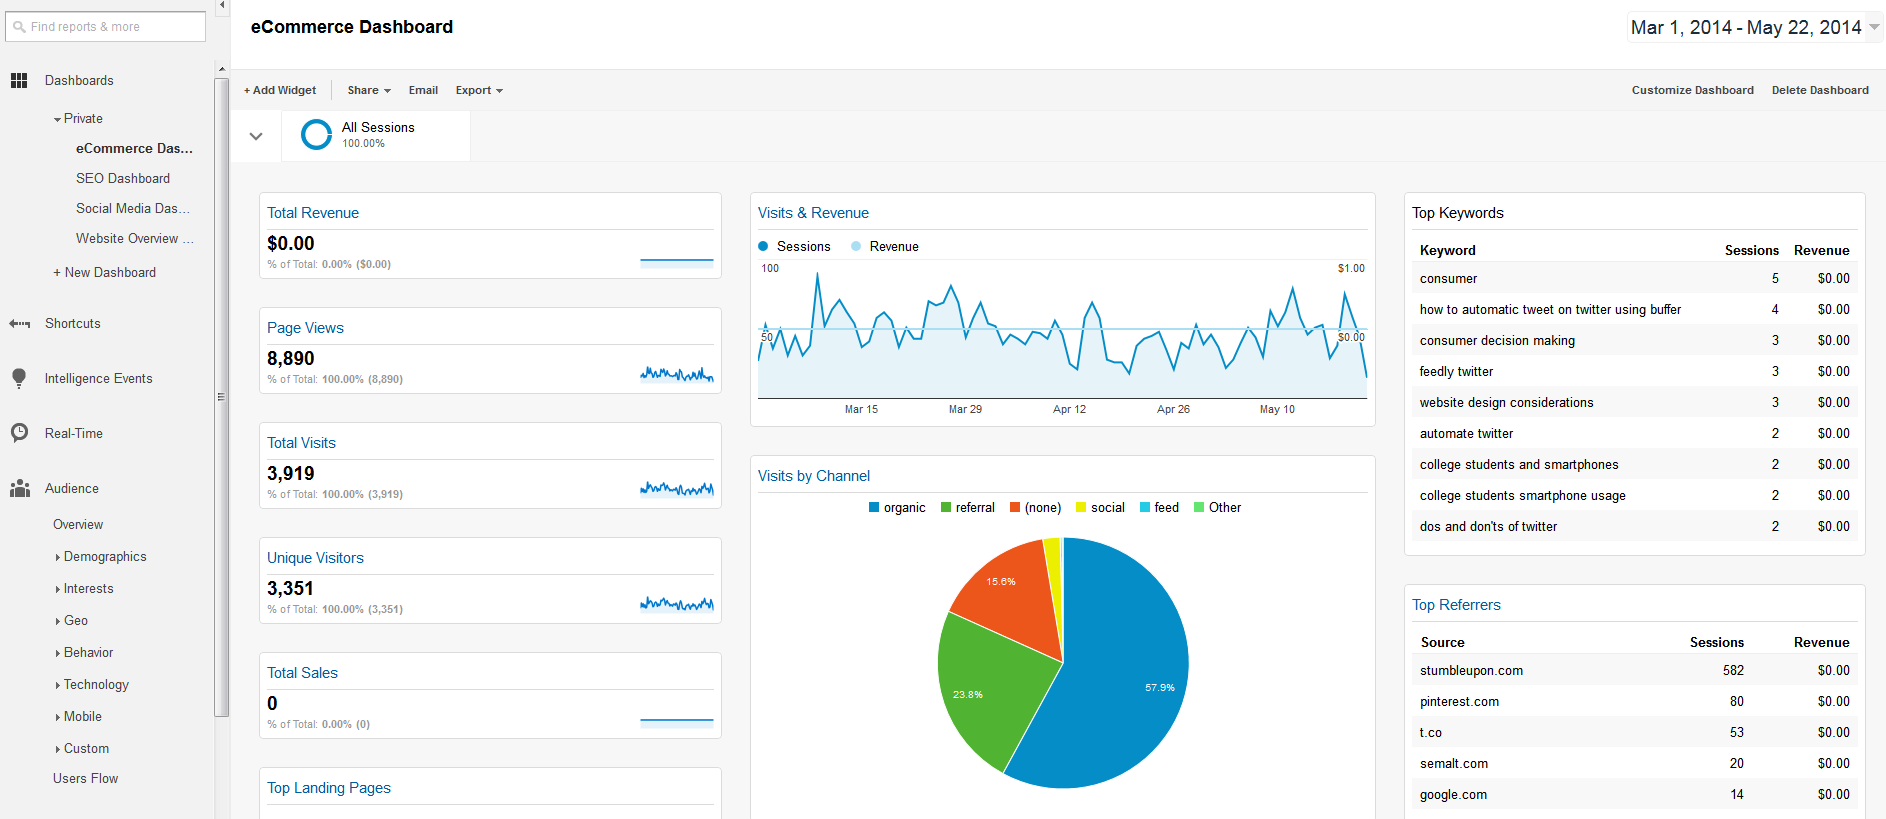 eCommerce Dashboard - Google Analytics